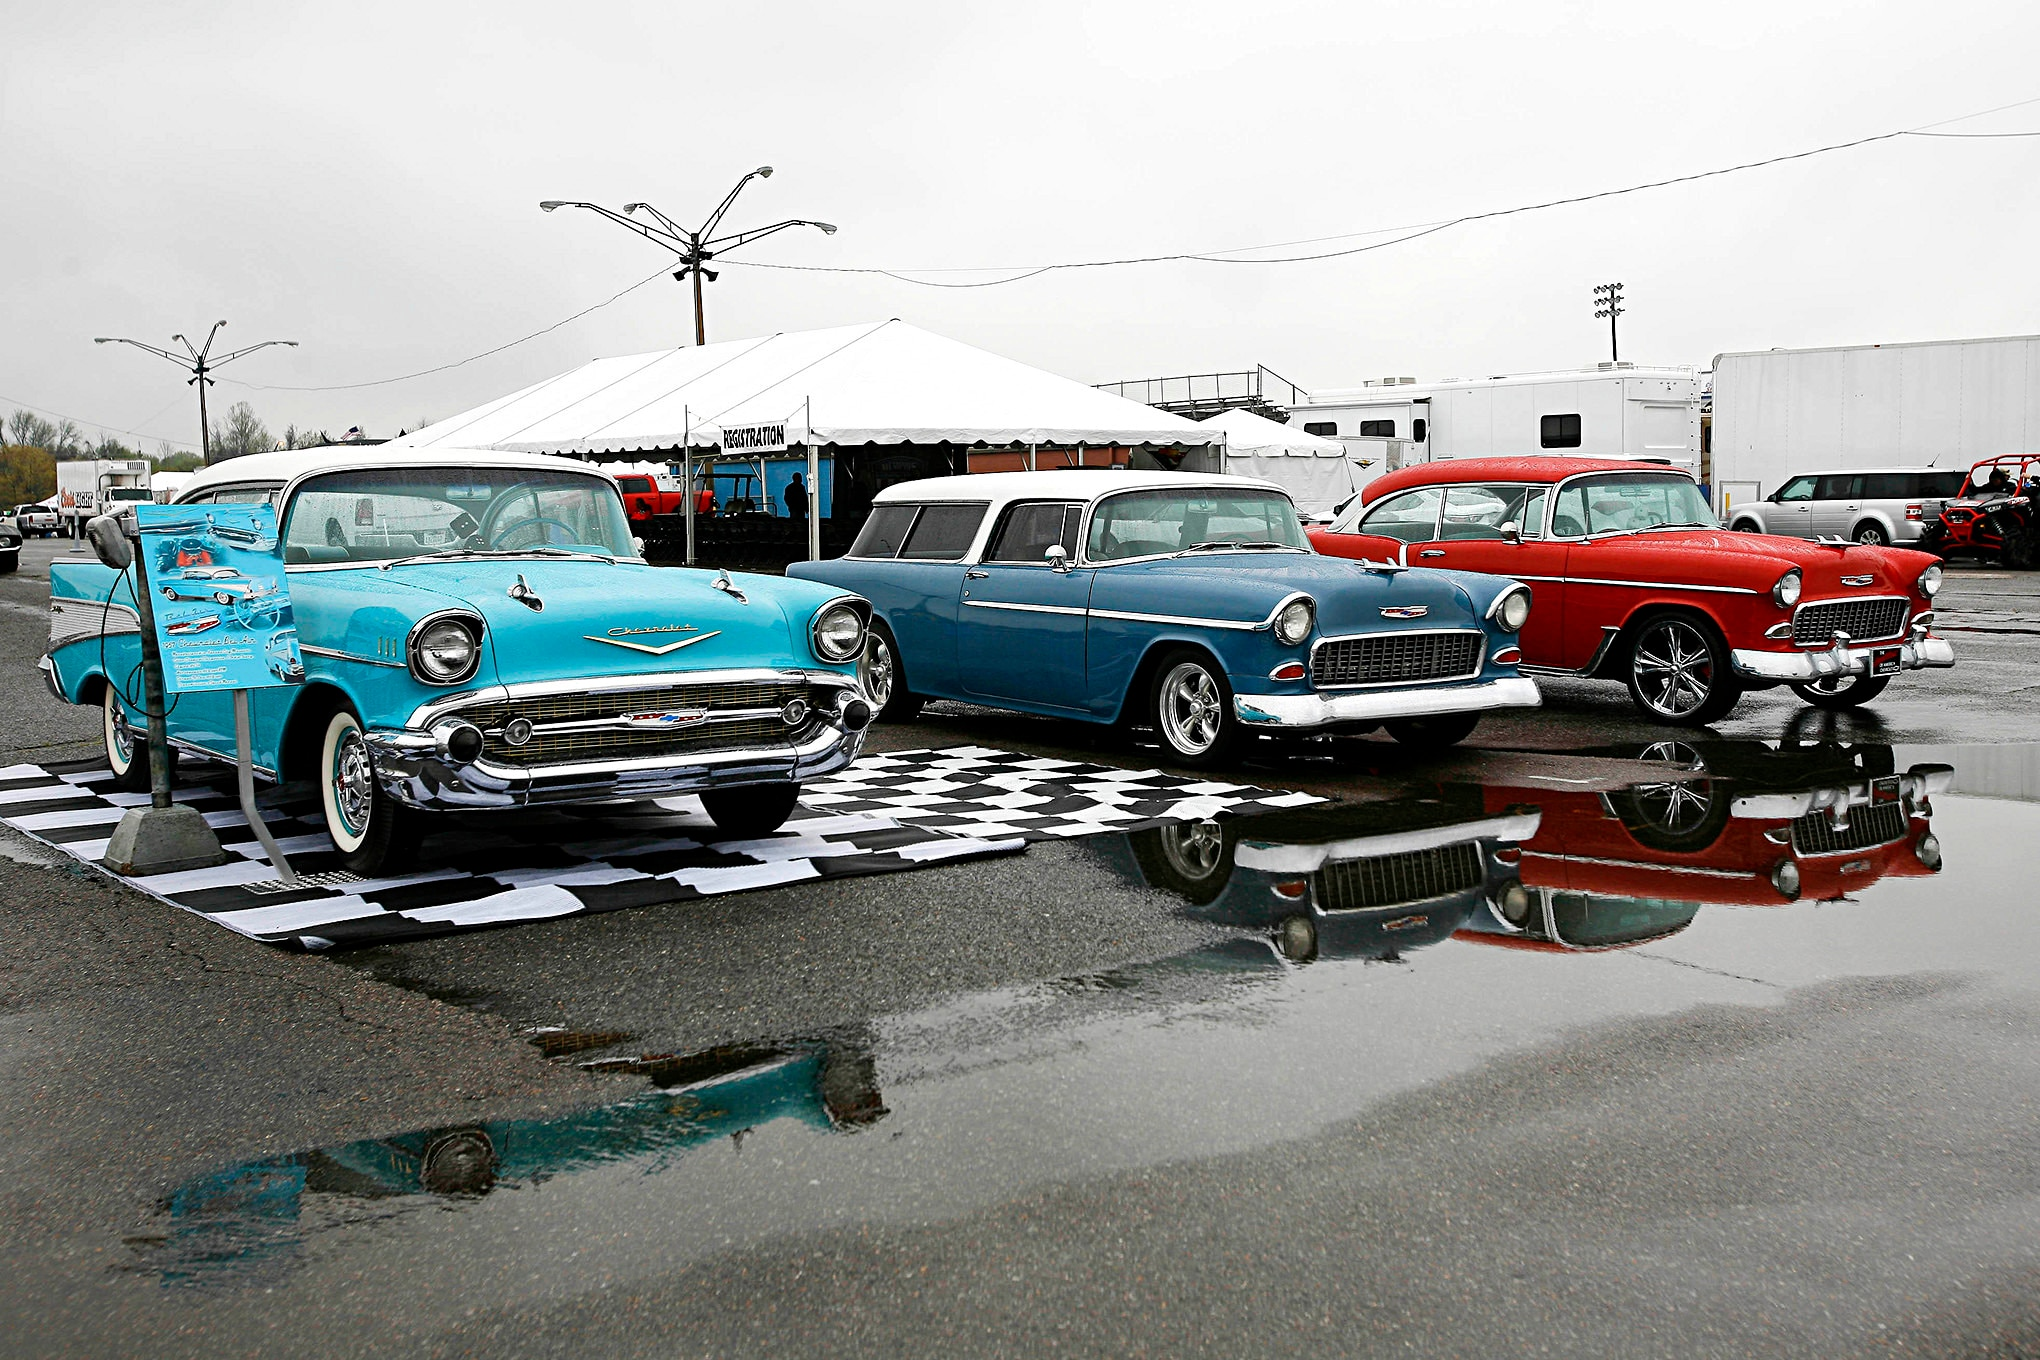 Friday at the 2018 Super Chevy Show Memphis gets Wet and Wild!